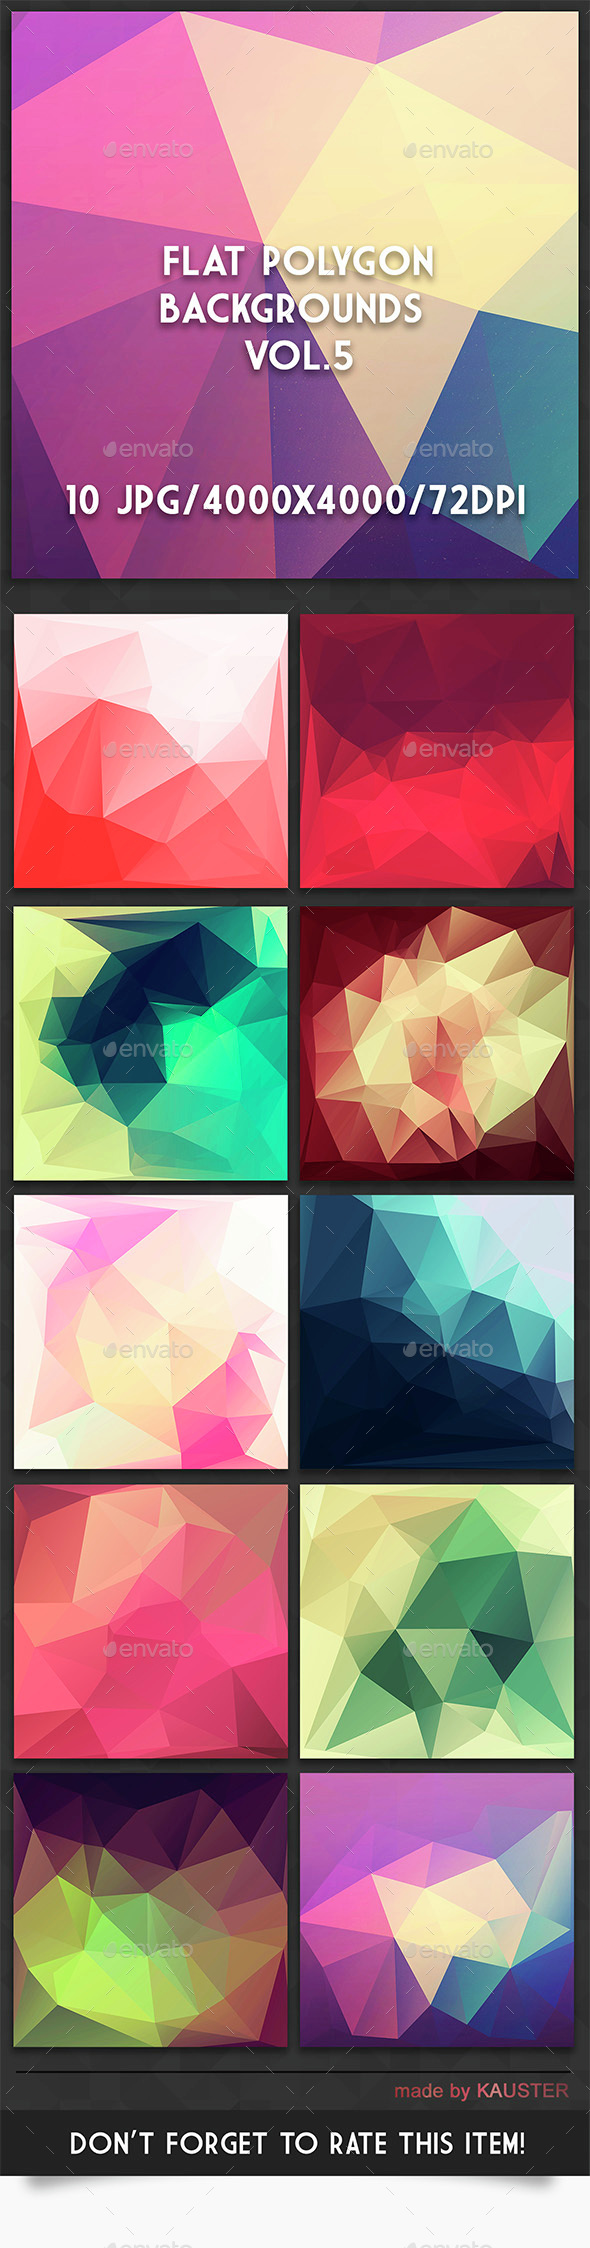 Flat Polygon Backgrounds Vol.5 - Abstract Backgrounds